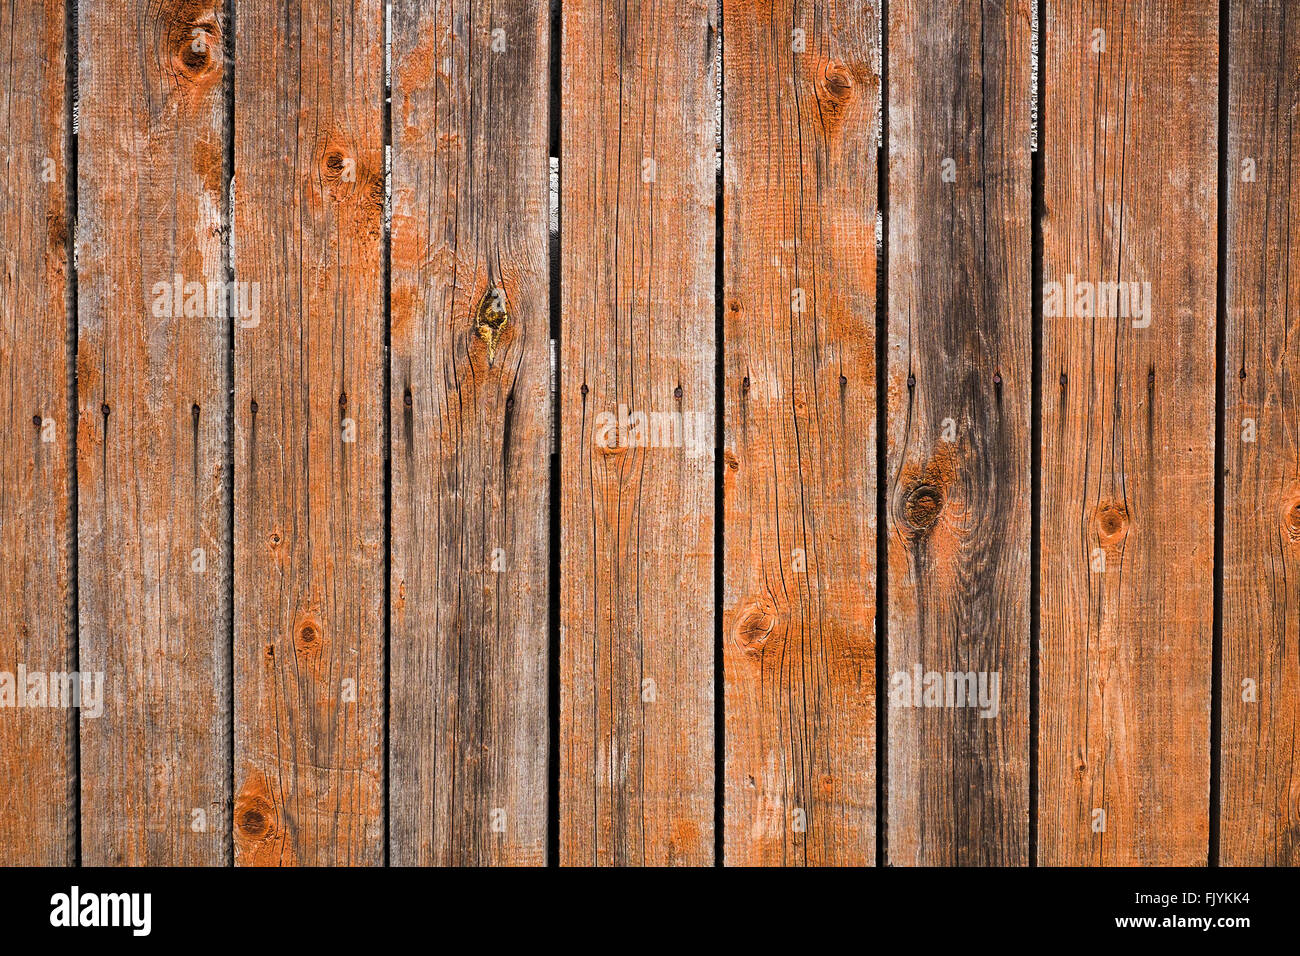 Vintage Wood Background Grunge Wooden Weathered Oak Or Pine Textured Planks Brown Rustic Fence